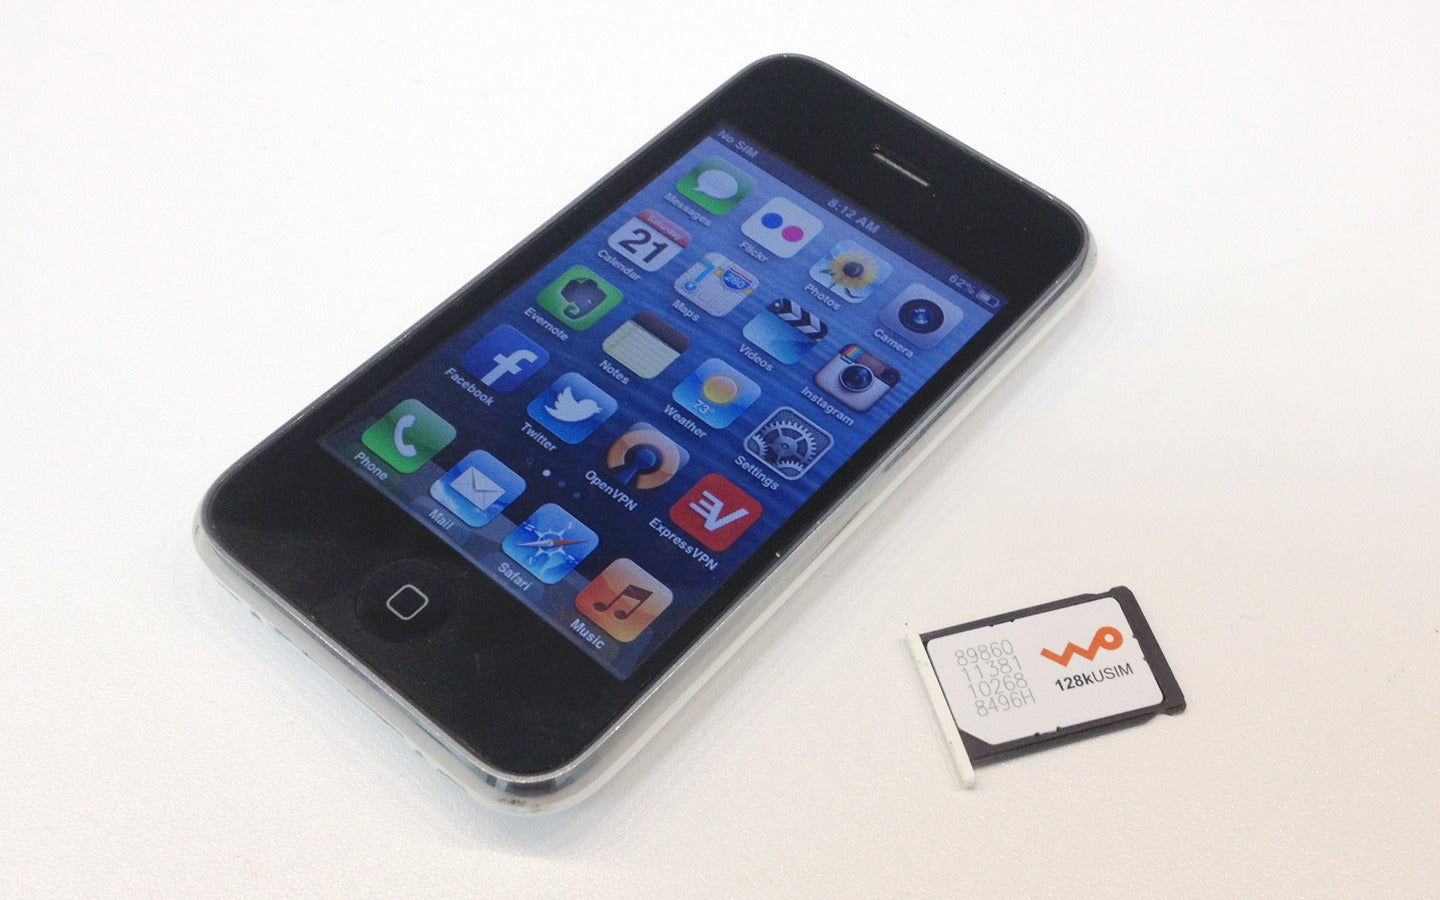 iphone 3GS China Unicom SIM